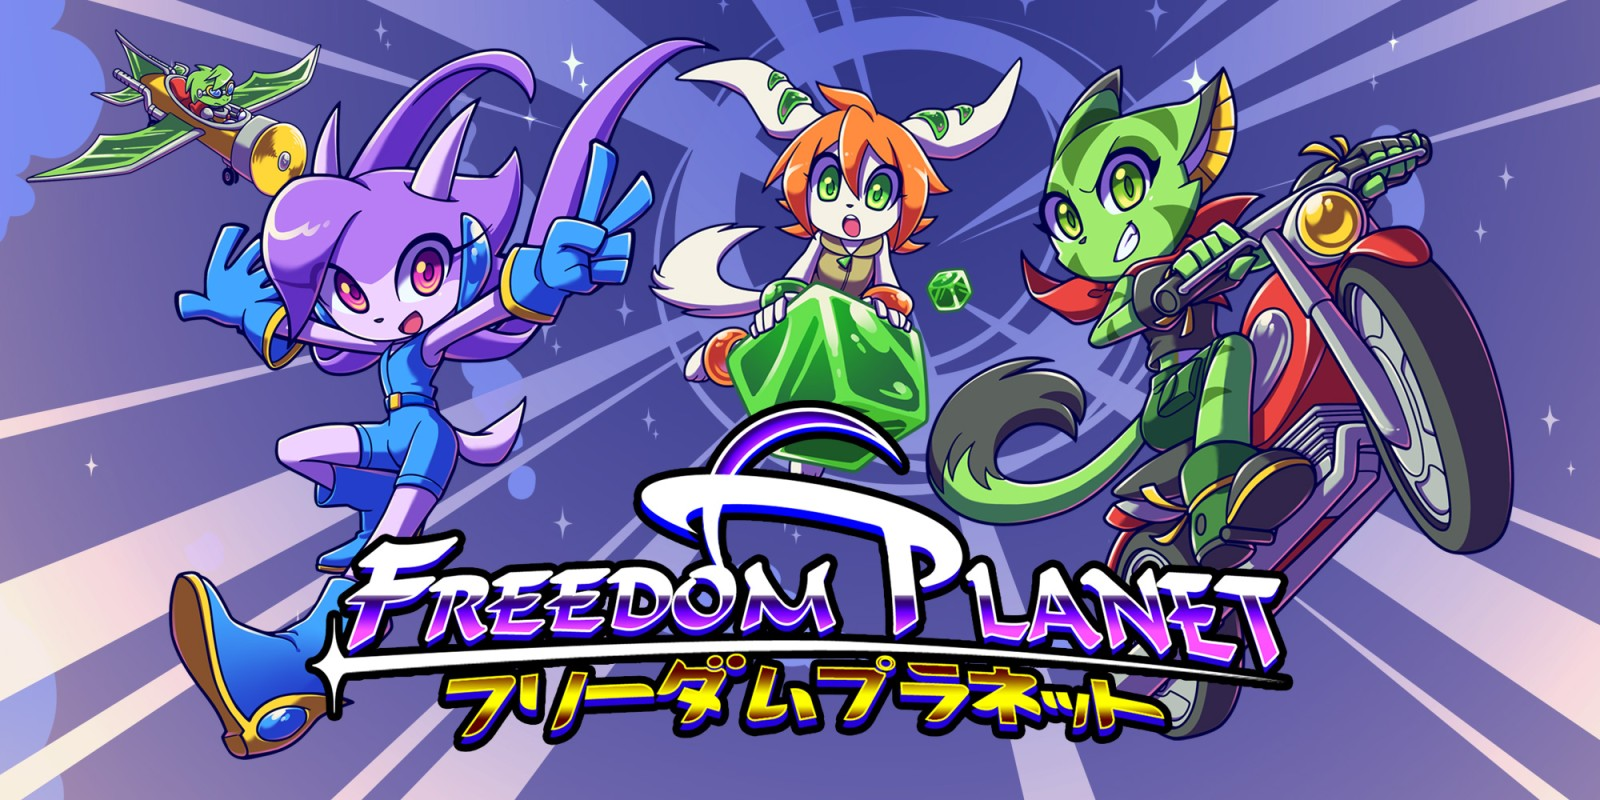 Figure 5 - Freedom Planet opening screen